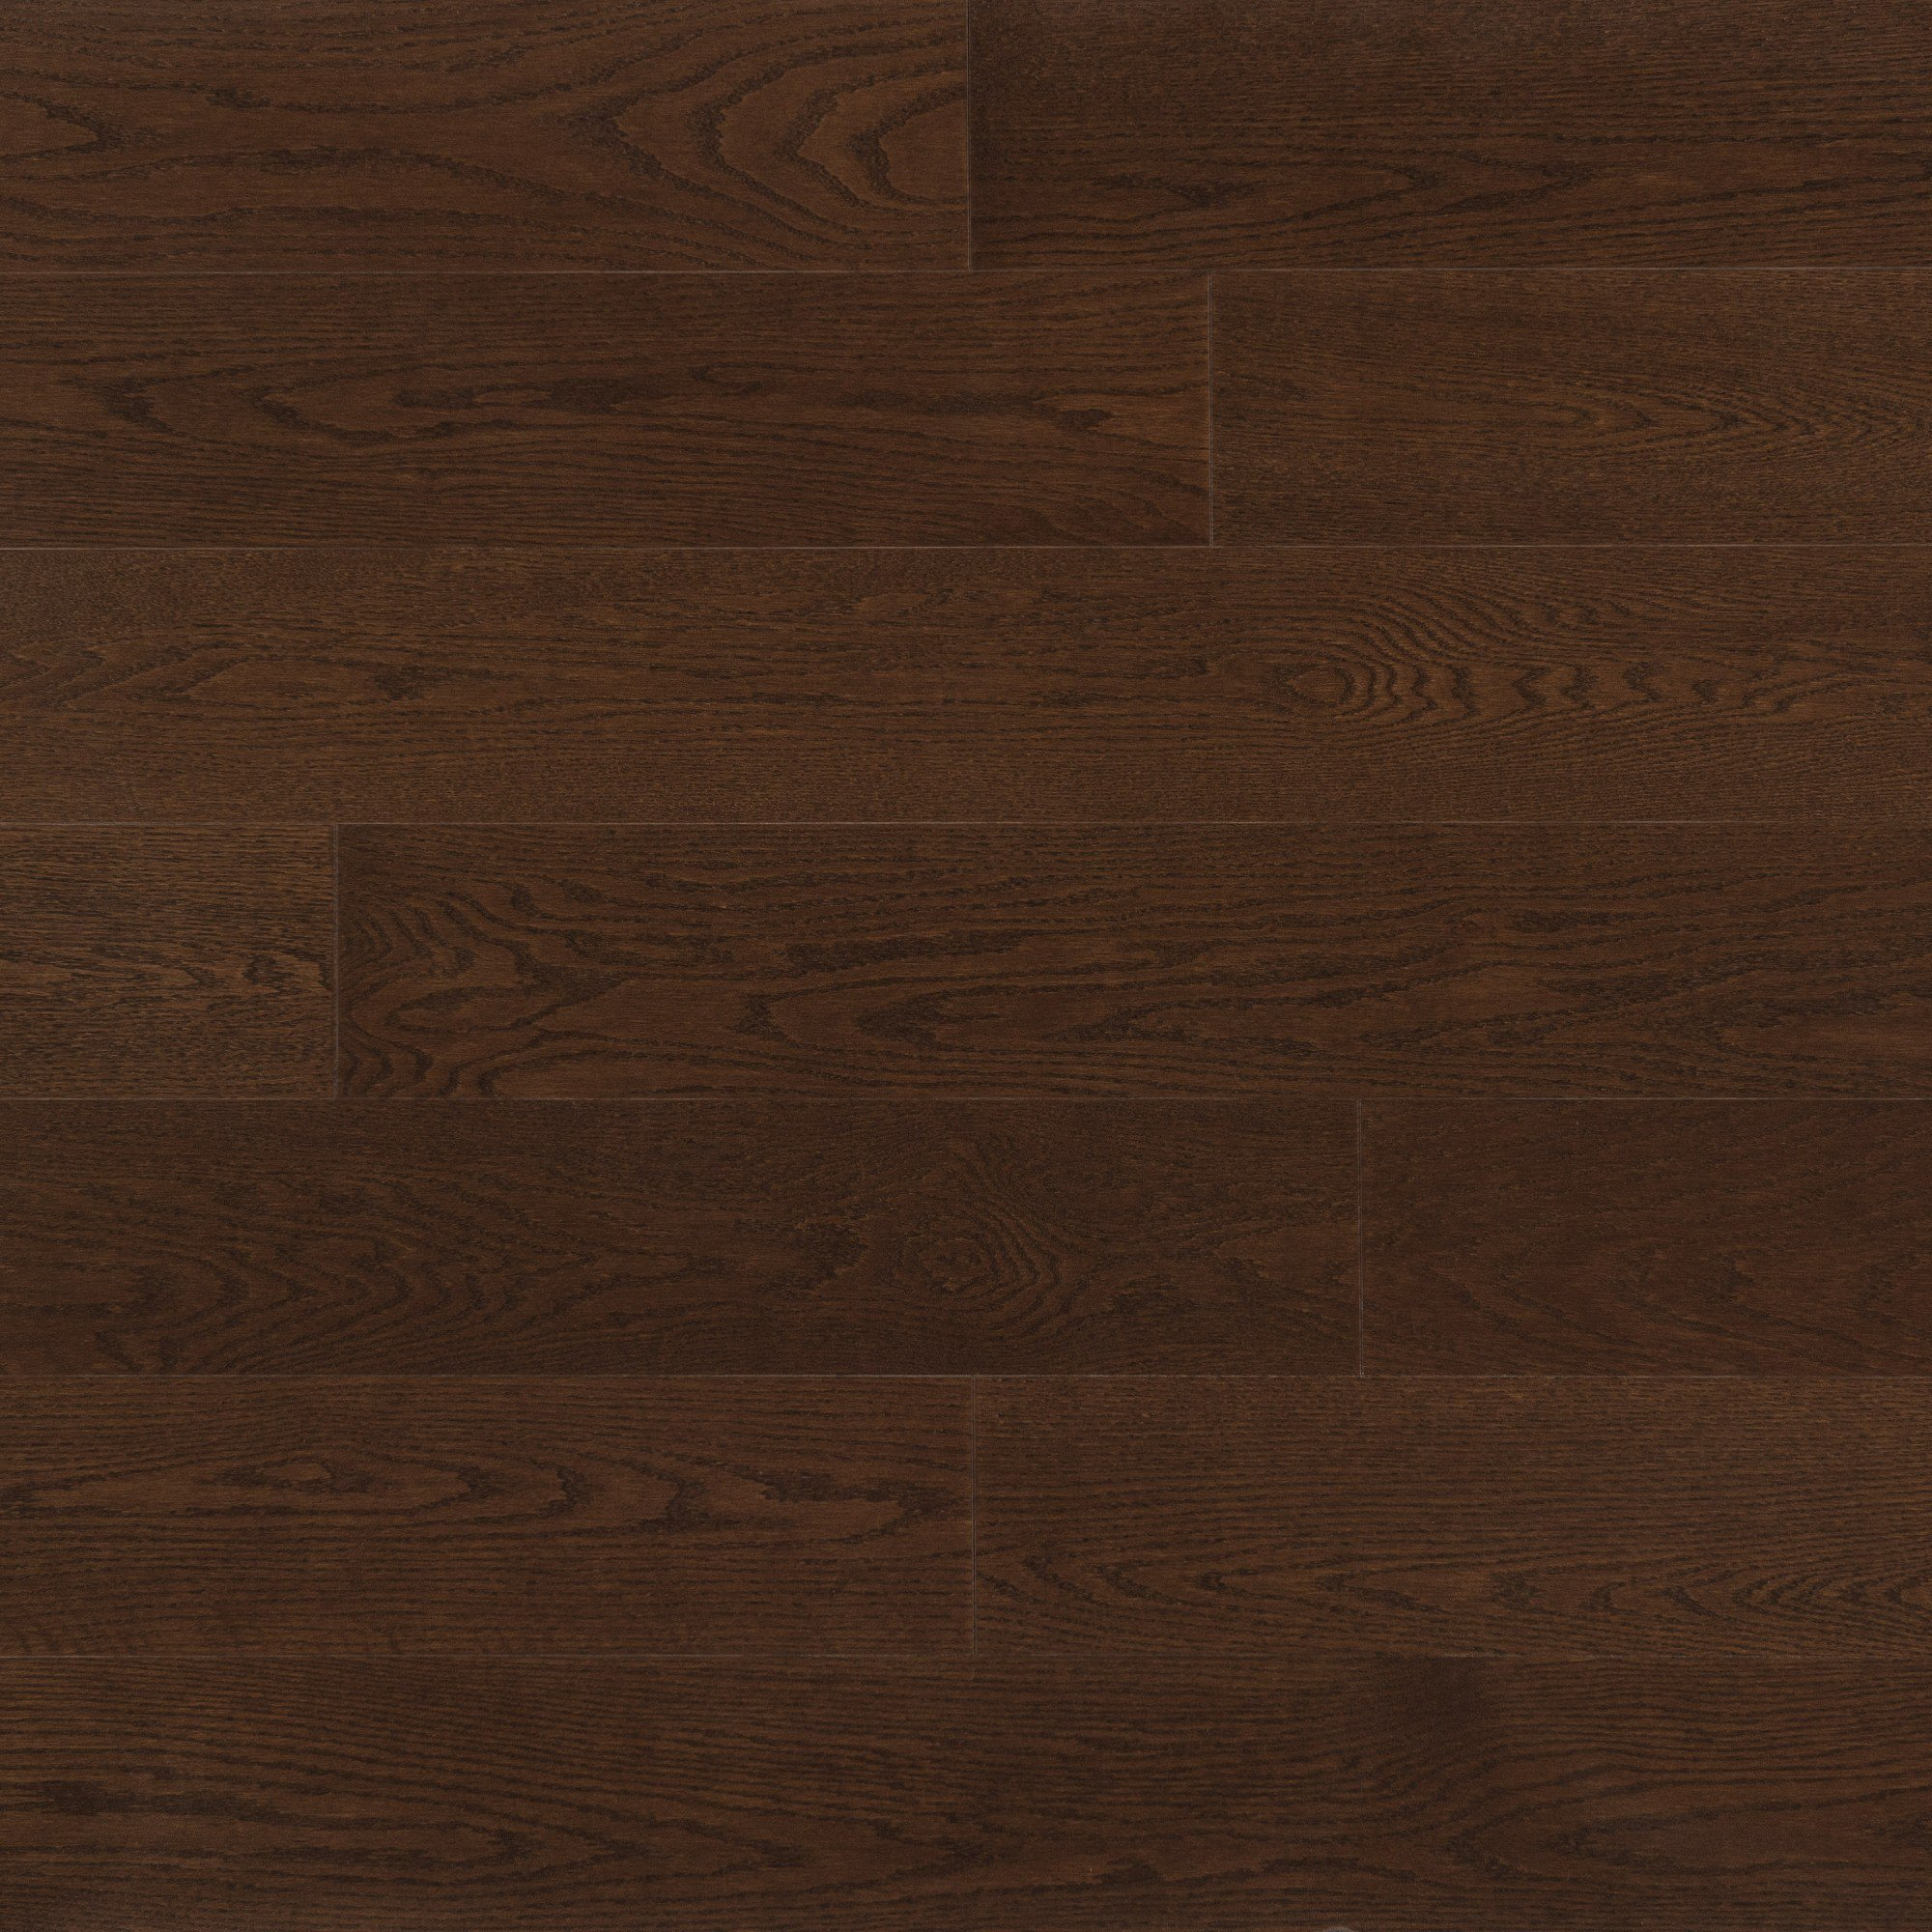 Admiration red oak havana mirage hardwood floors for Mirage wood floors